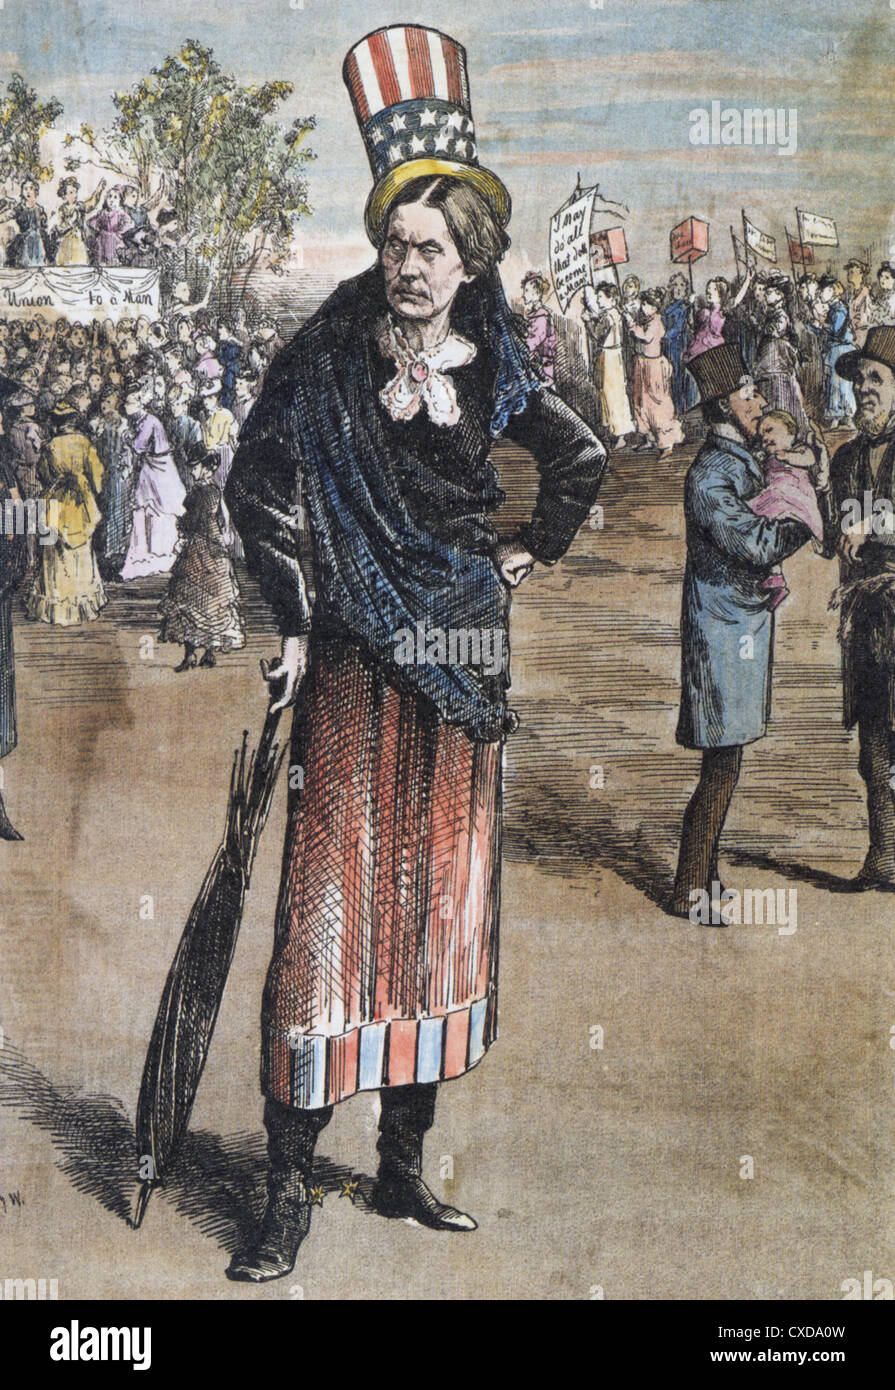 SUSAN B. ANTHONY (1820-1906) US civil rights leader in a cartoon about 1895 - Stock Image